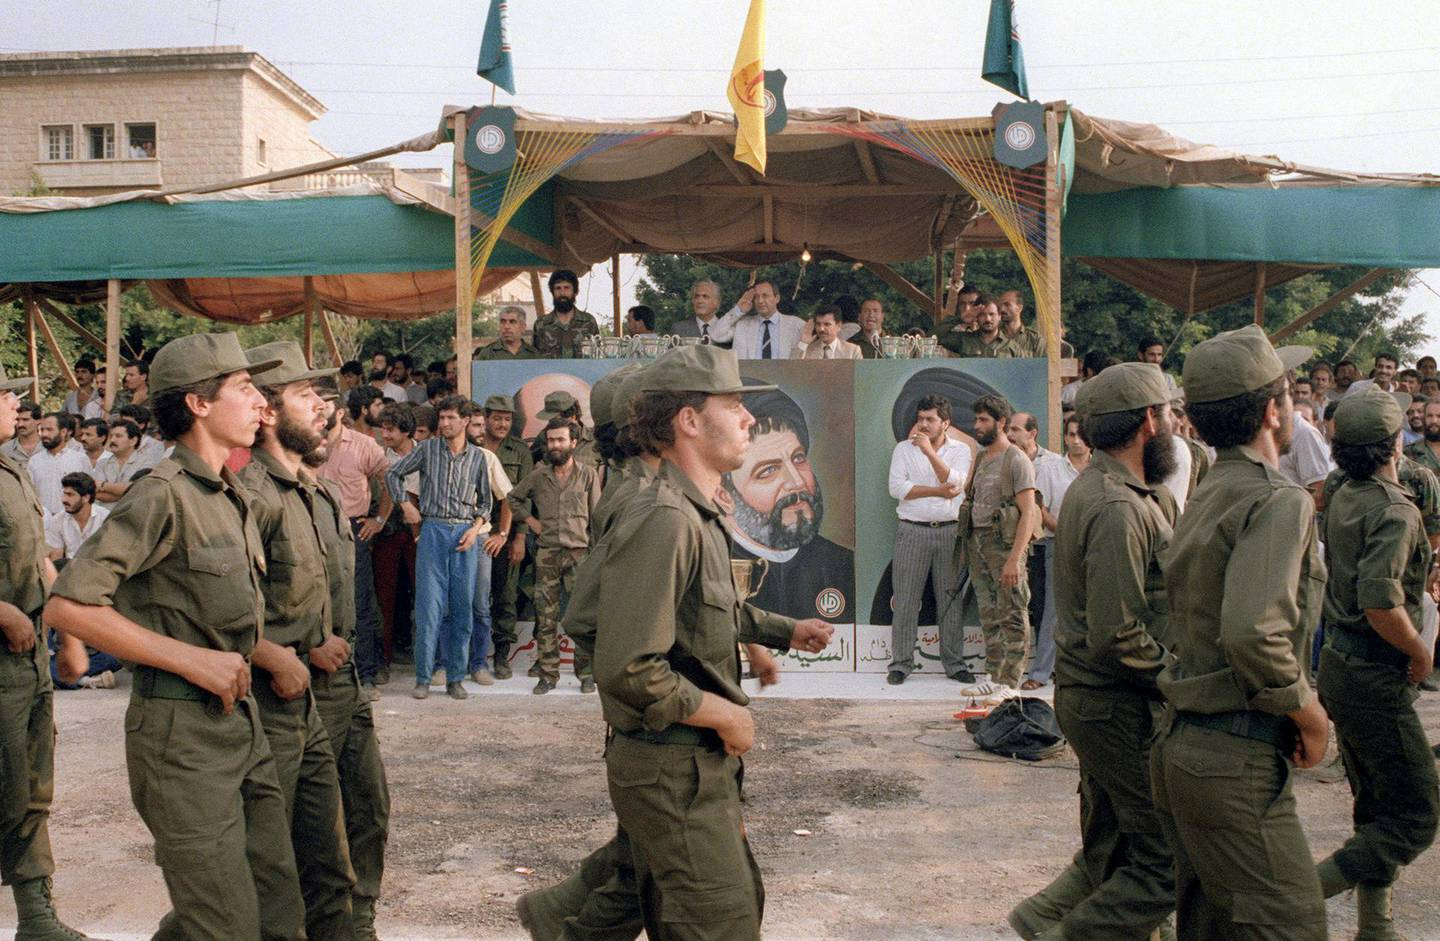 Nabih Berri (C-saluting), reviews militiamen from his Amal movement as they parade, 08 August 1986 in front of Imam Moussa Al Sadr portrait in the southern suburb of west Beirut. Berri, led the Amal movement, the first political organization of Lebanon's Shi'ite Moslems, during the fierce fighting of Lebanon's civil war. Berri was a key player in the negotiated release of the hostages following the hijacking of TWA Flight 847 in Beirut. He was elected Speaker of the Lebanese parliament 20 November 1992.  AFP PHOTO ASSAD JRADI / AFP PHOTO / ASSAD JRADI